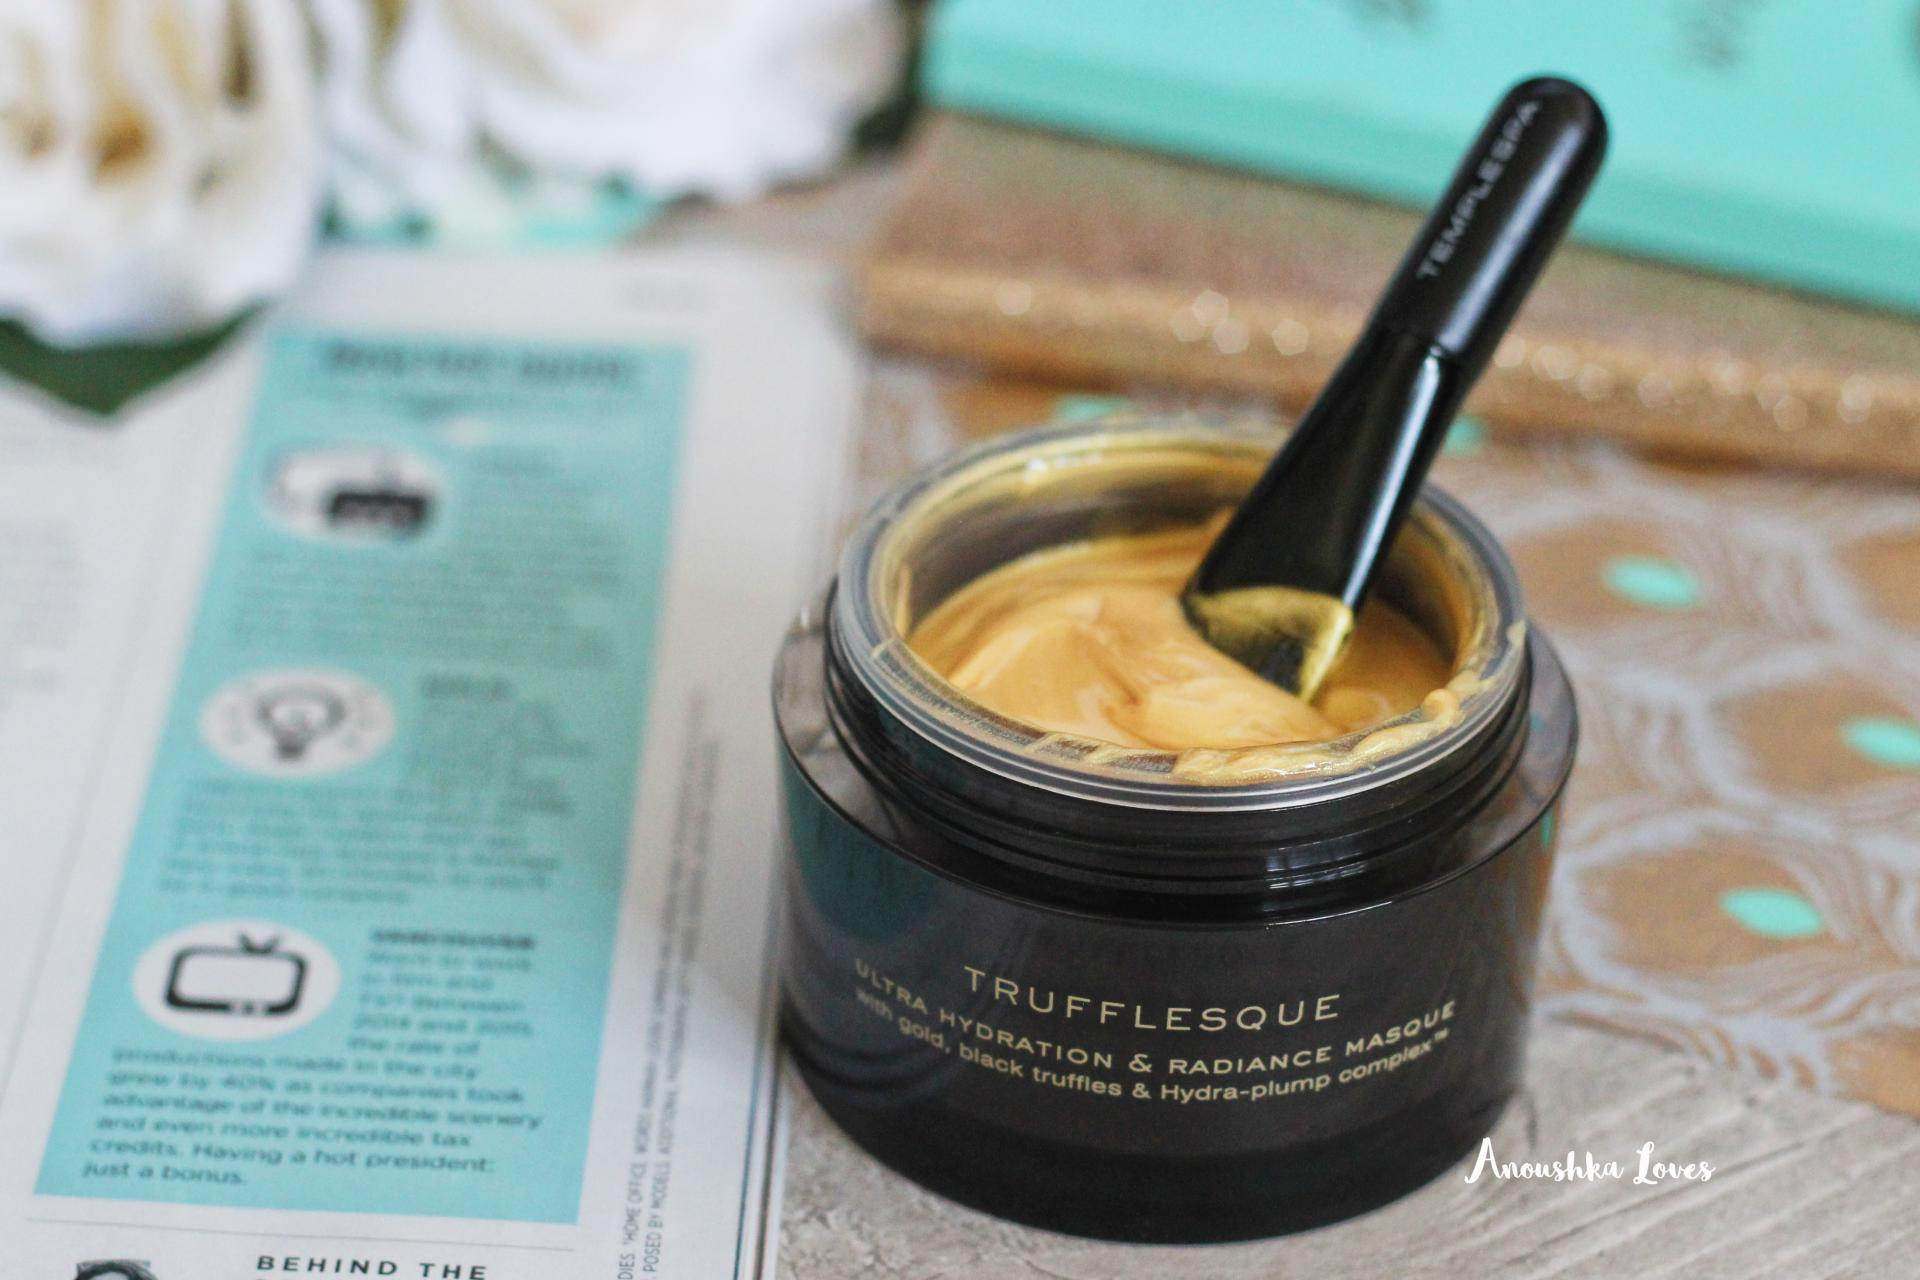 Temple Spa Truffle Collection Trufflesque